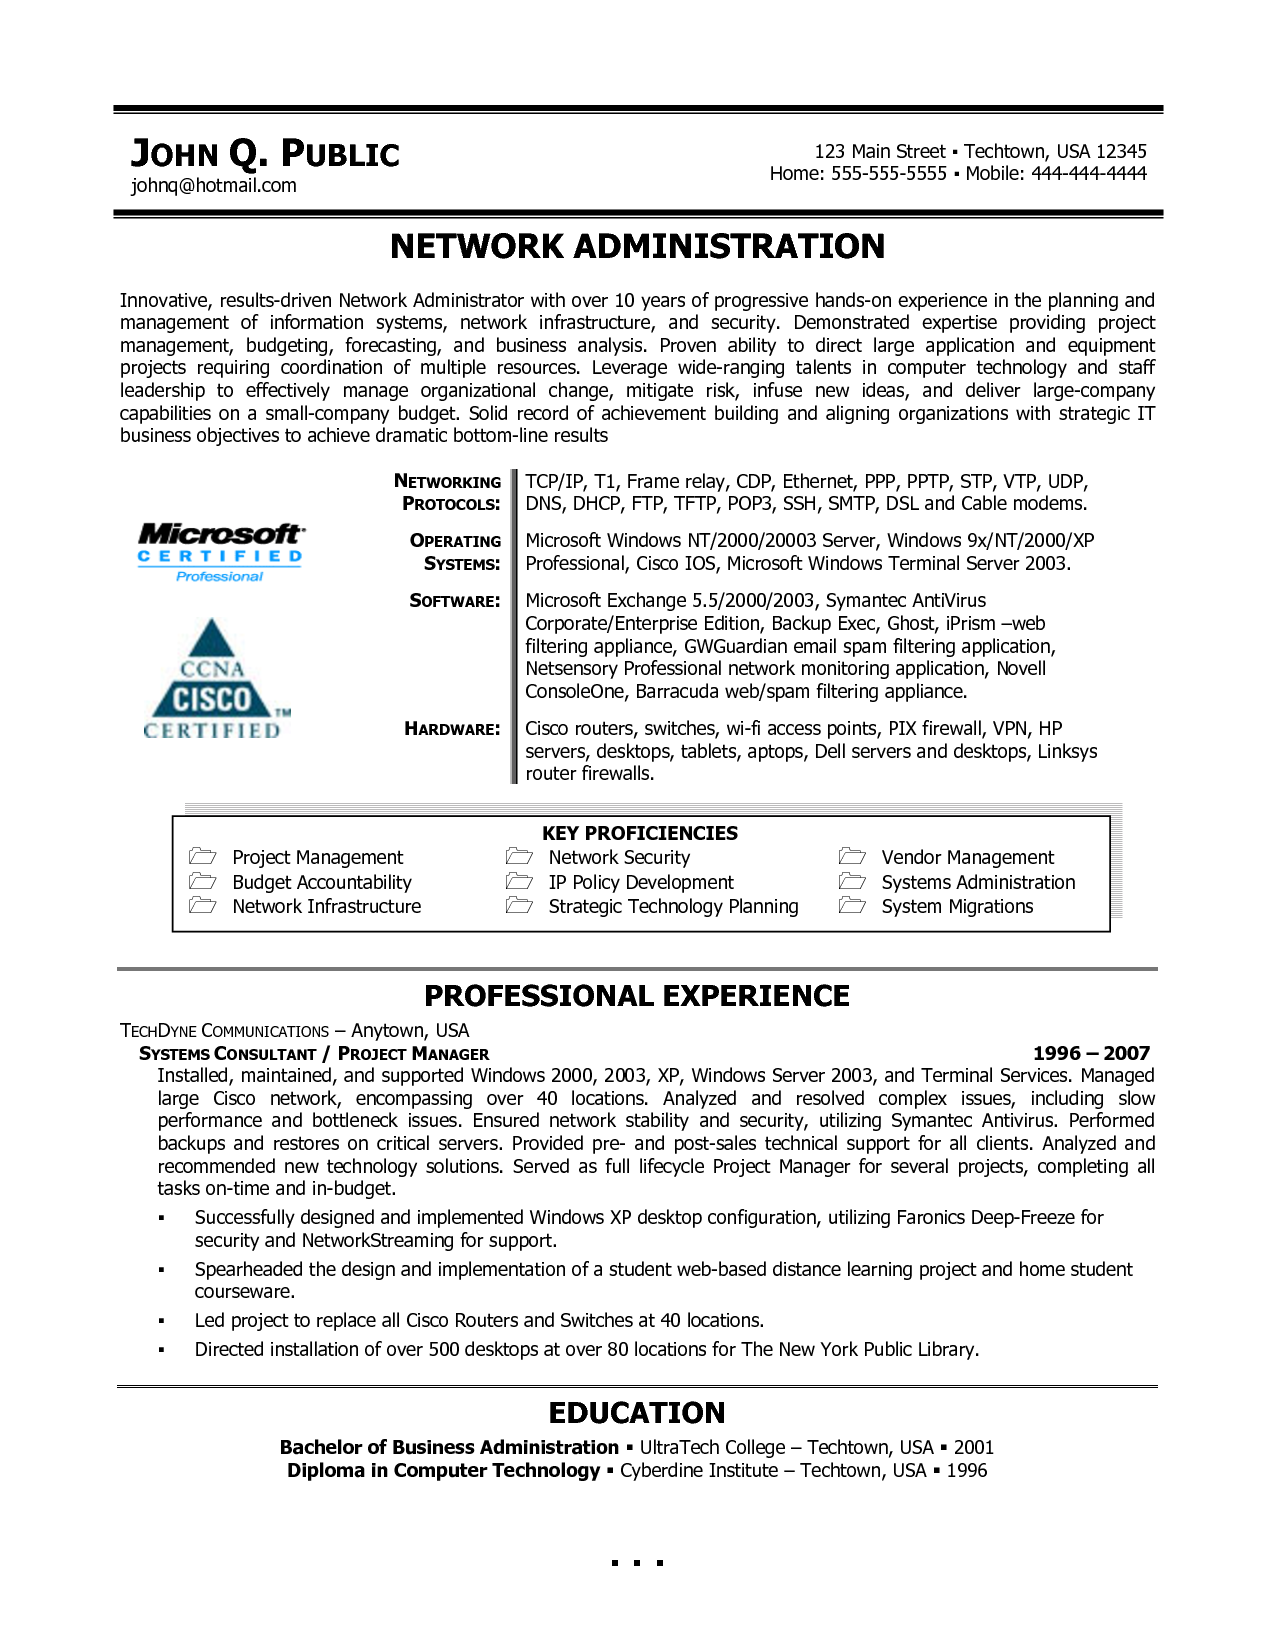 sle networking resume 28 images michael kyle resume